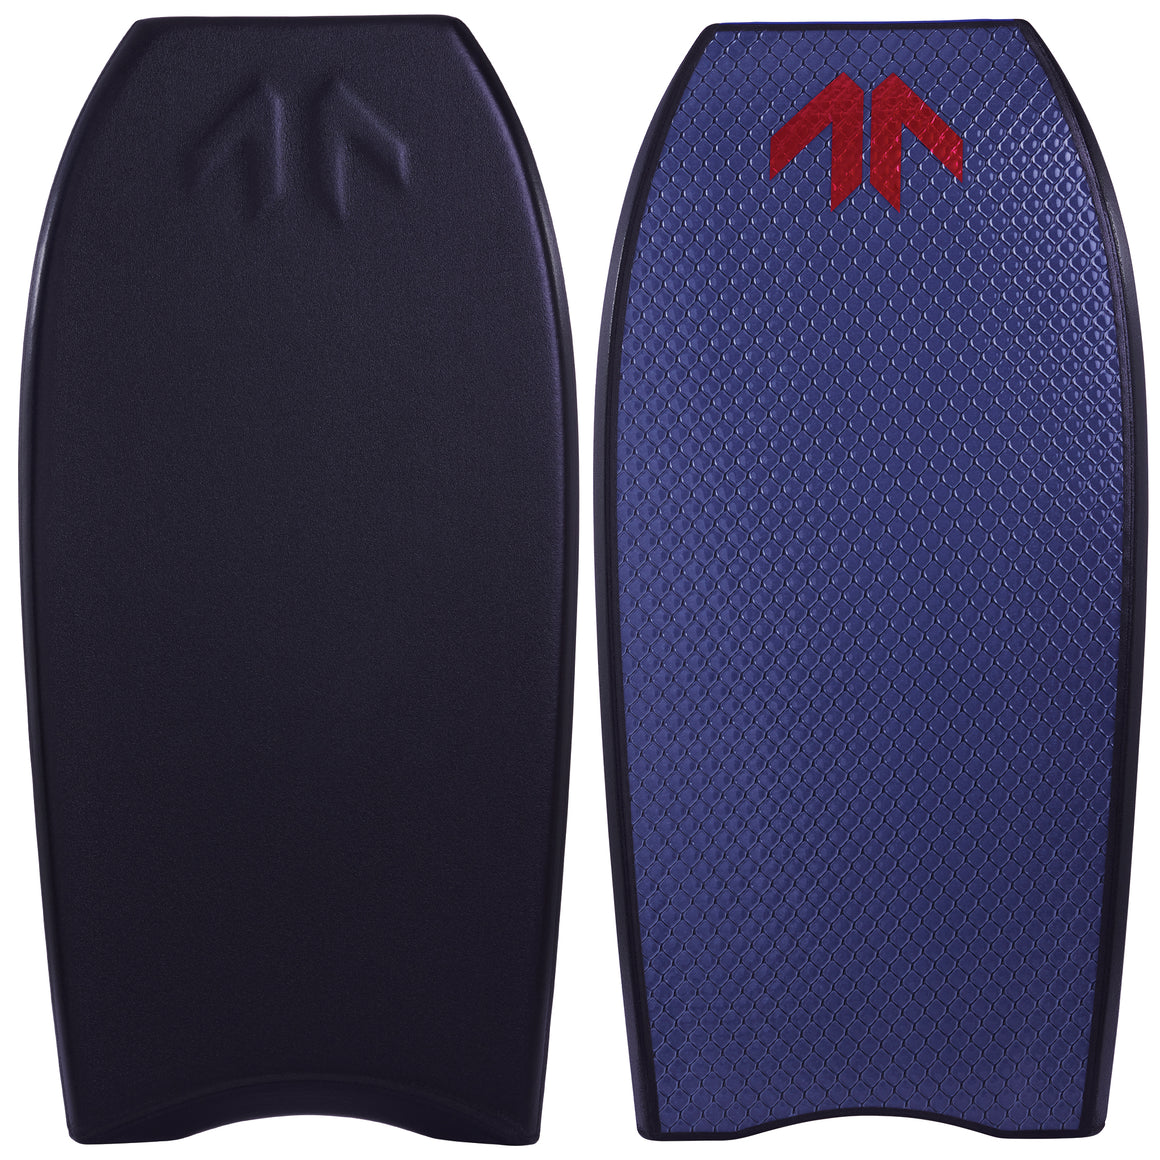 Mitch Rawlins ULTRA PP Crescent Tail - BLACK / CLEAR